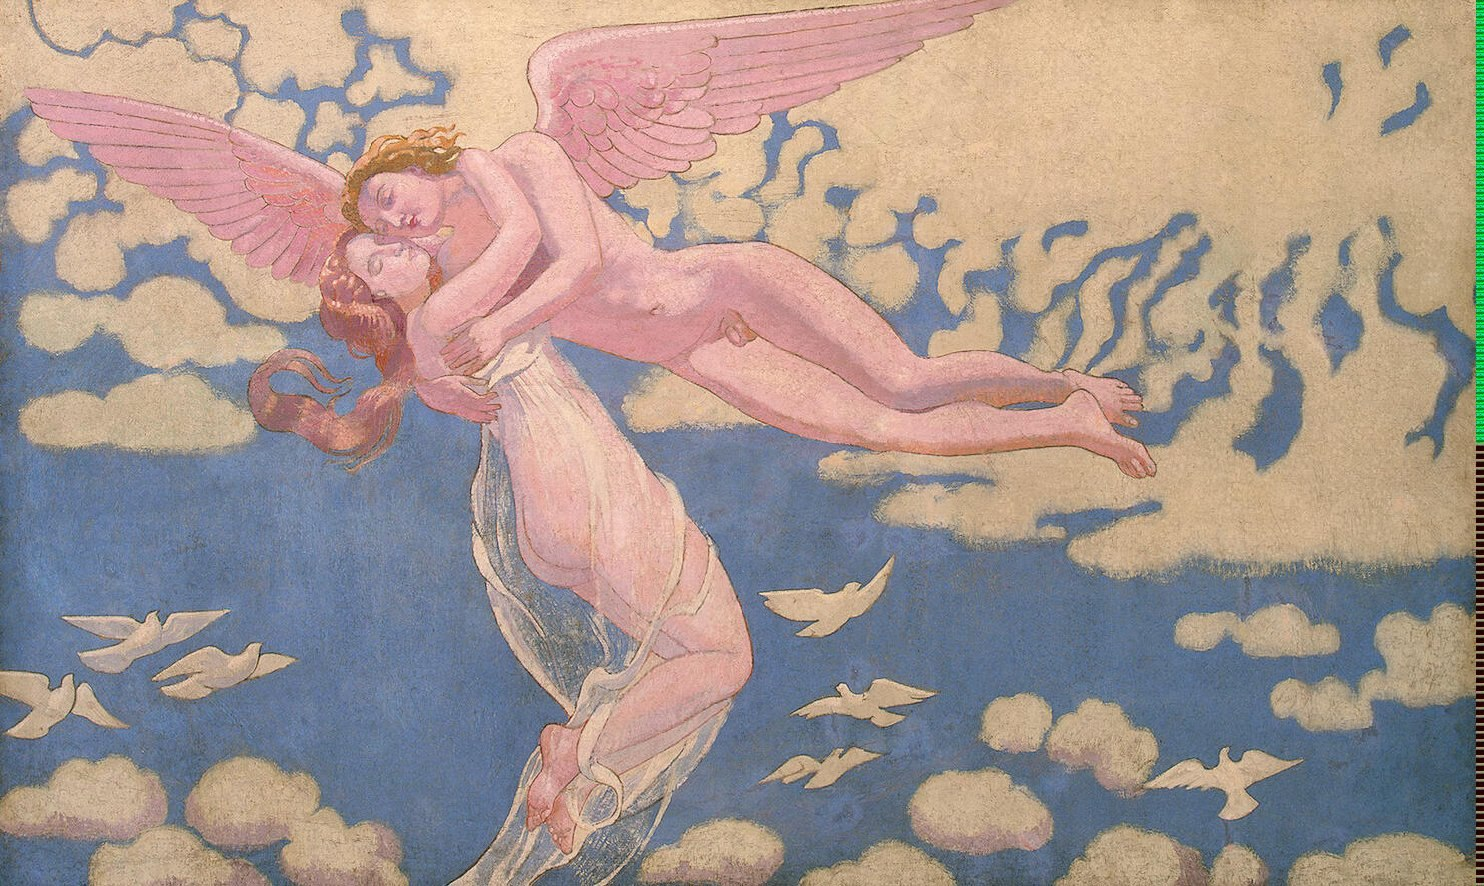 Maurice Denis - Amor tragt Psyche in den Himmel - Cupid Carrying Psyche Up to Heaven